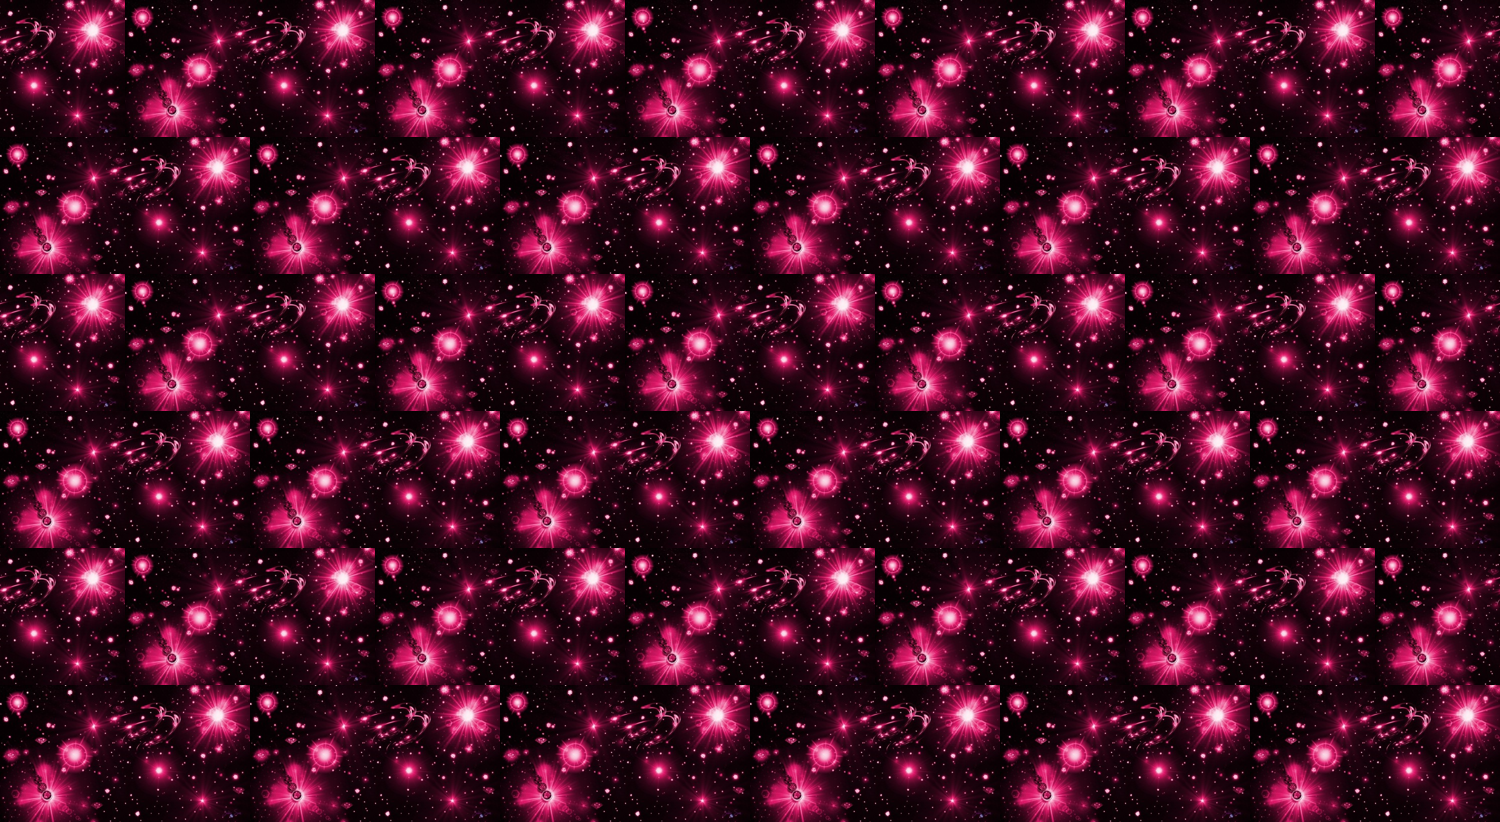 Go Back Images For Hot Pink And Black Backgrounds 1500x822